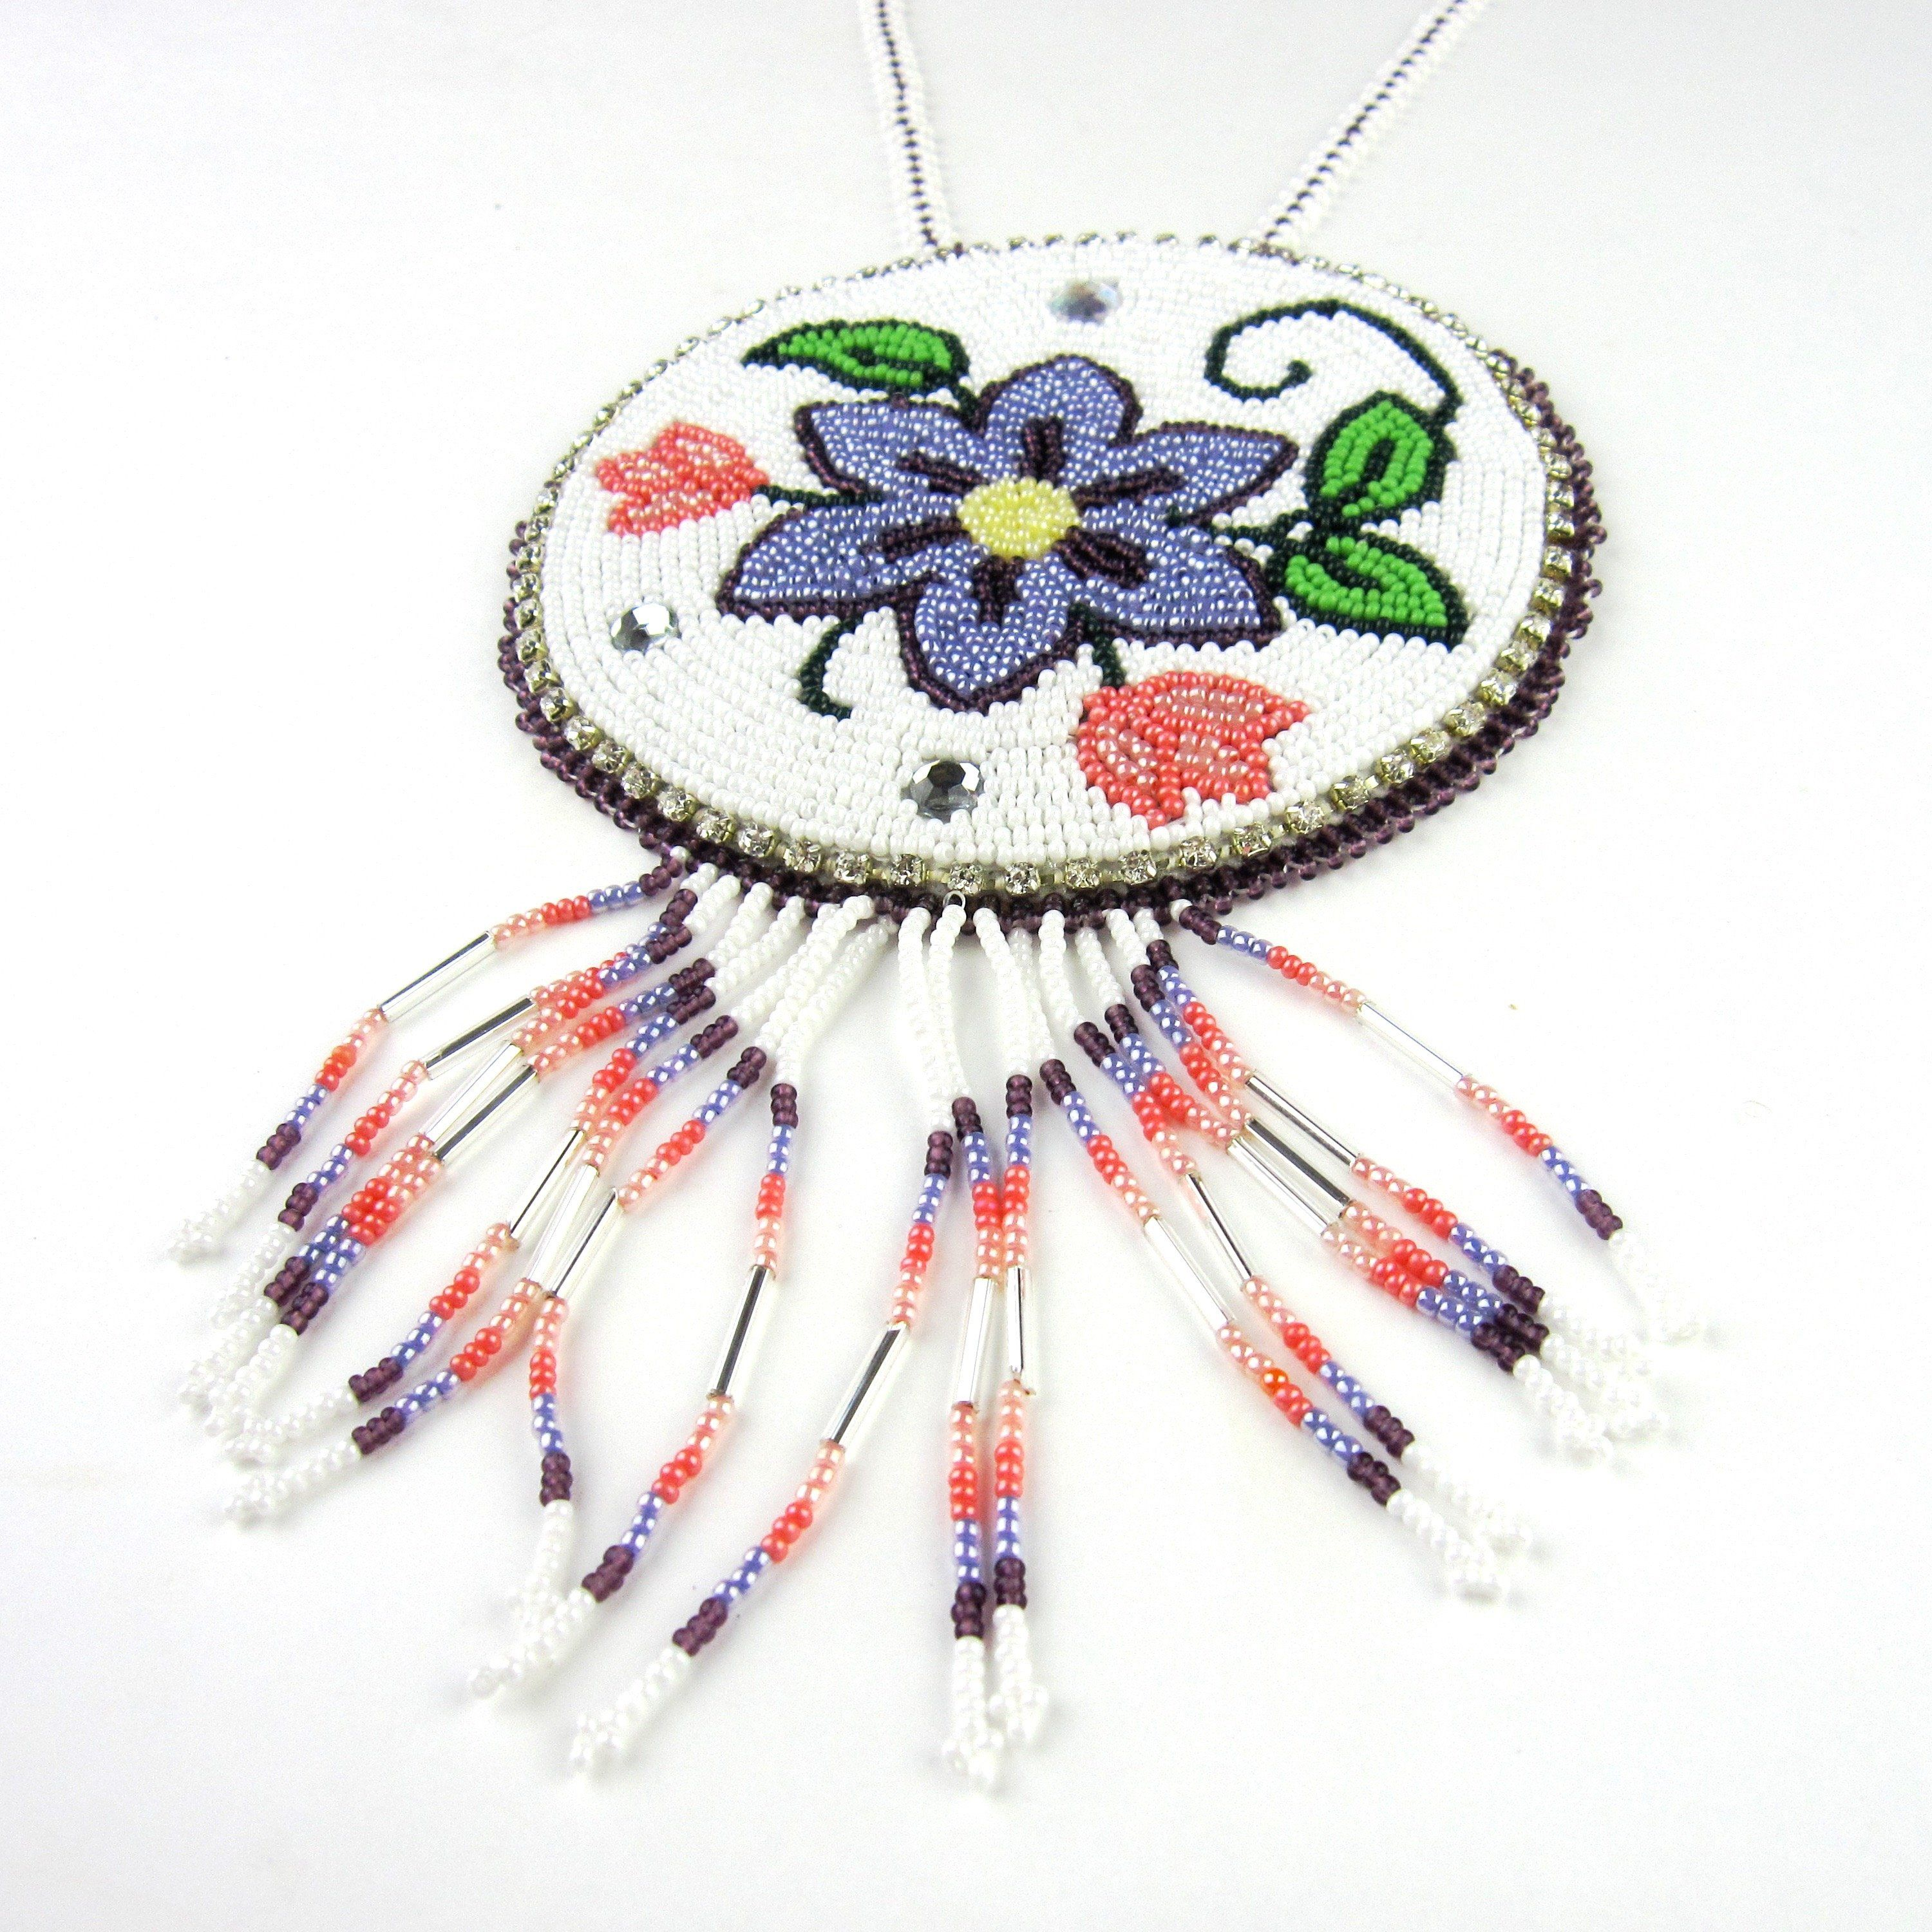 This beautiful earring and necklace set is fully beaded and features